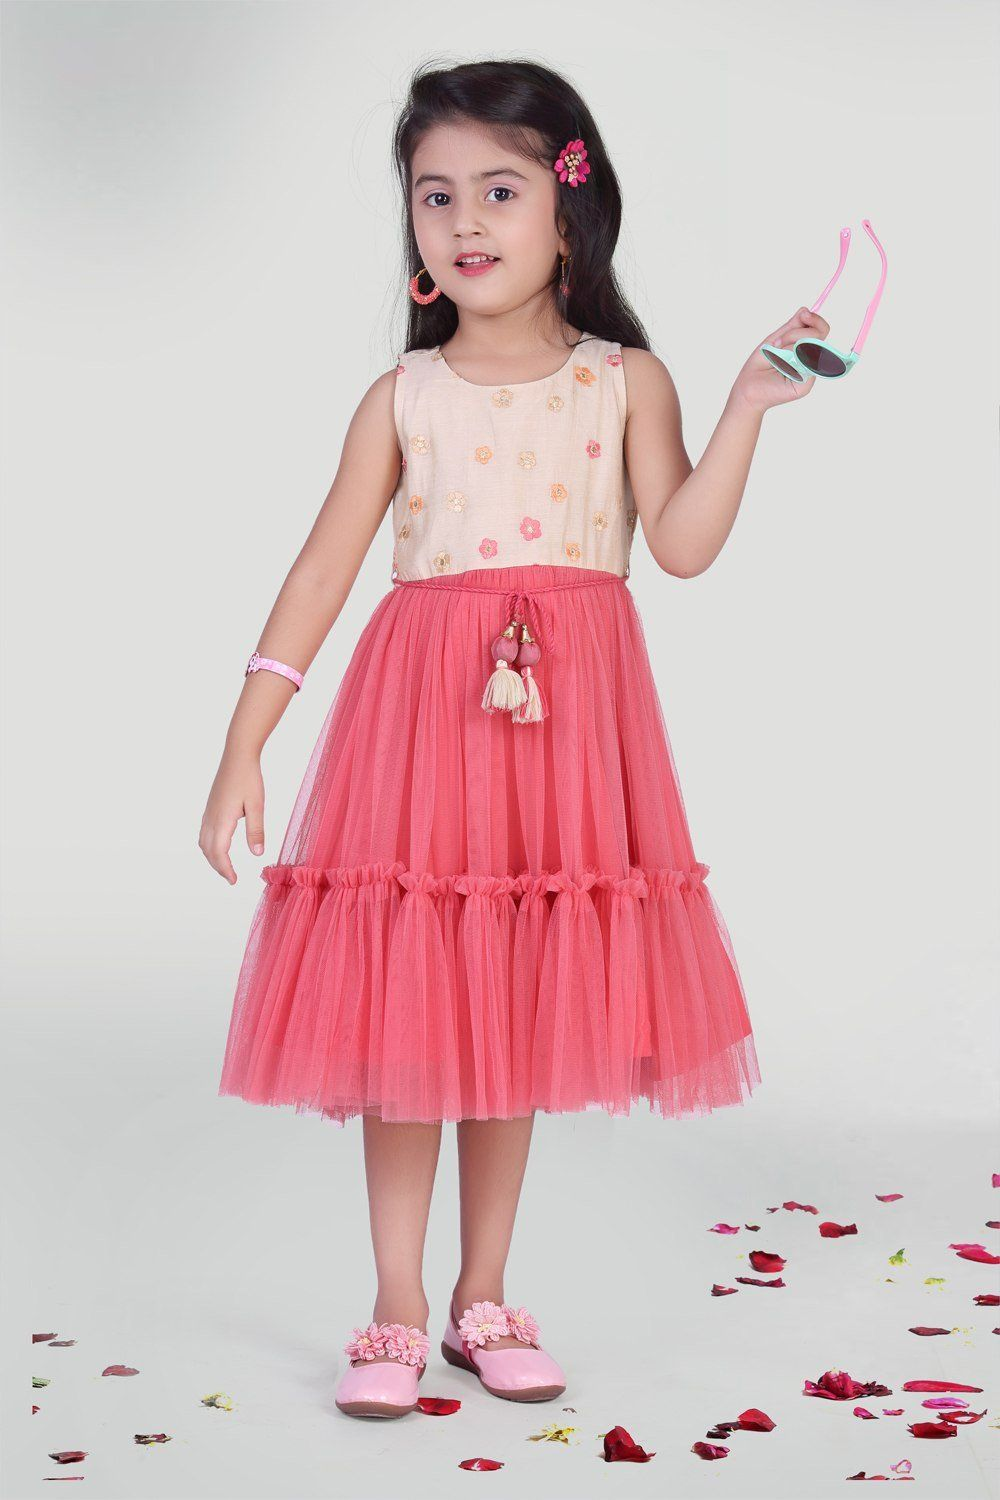 28 Girl's Polyester Frock in Pink   8 9 Year